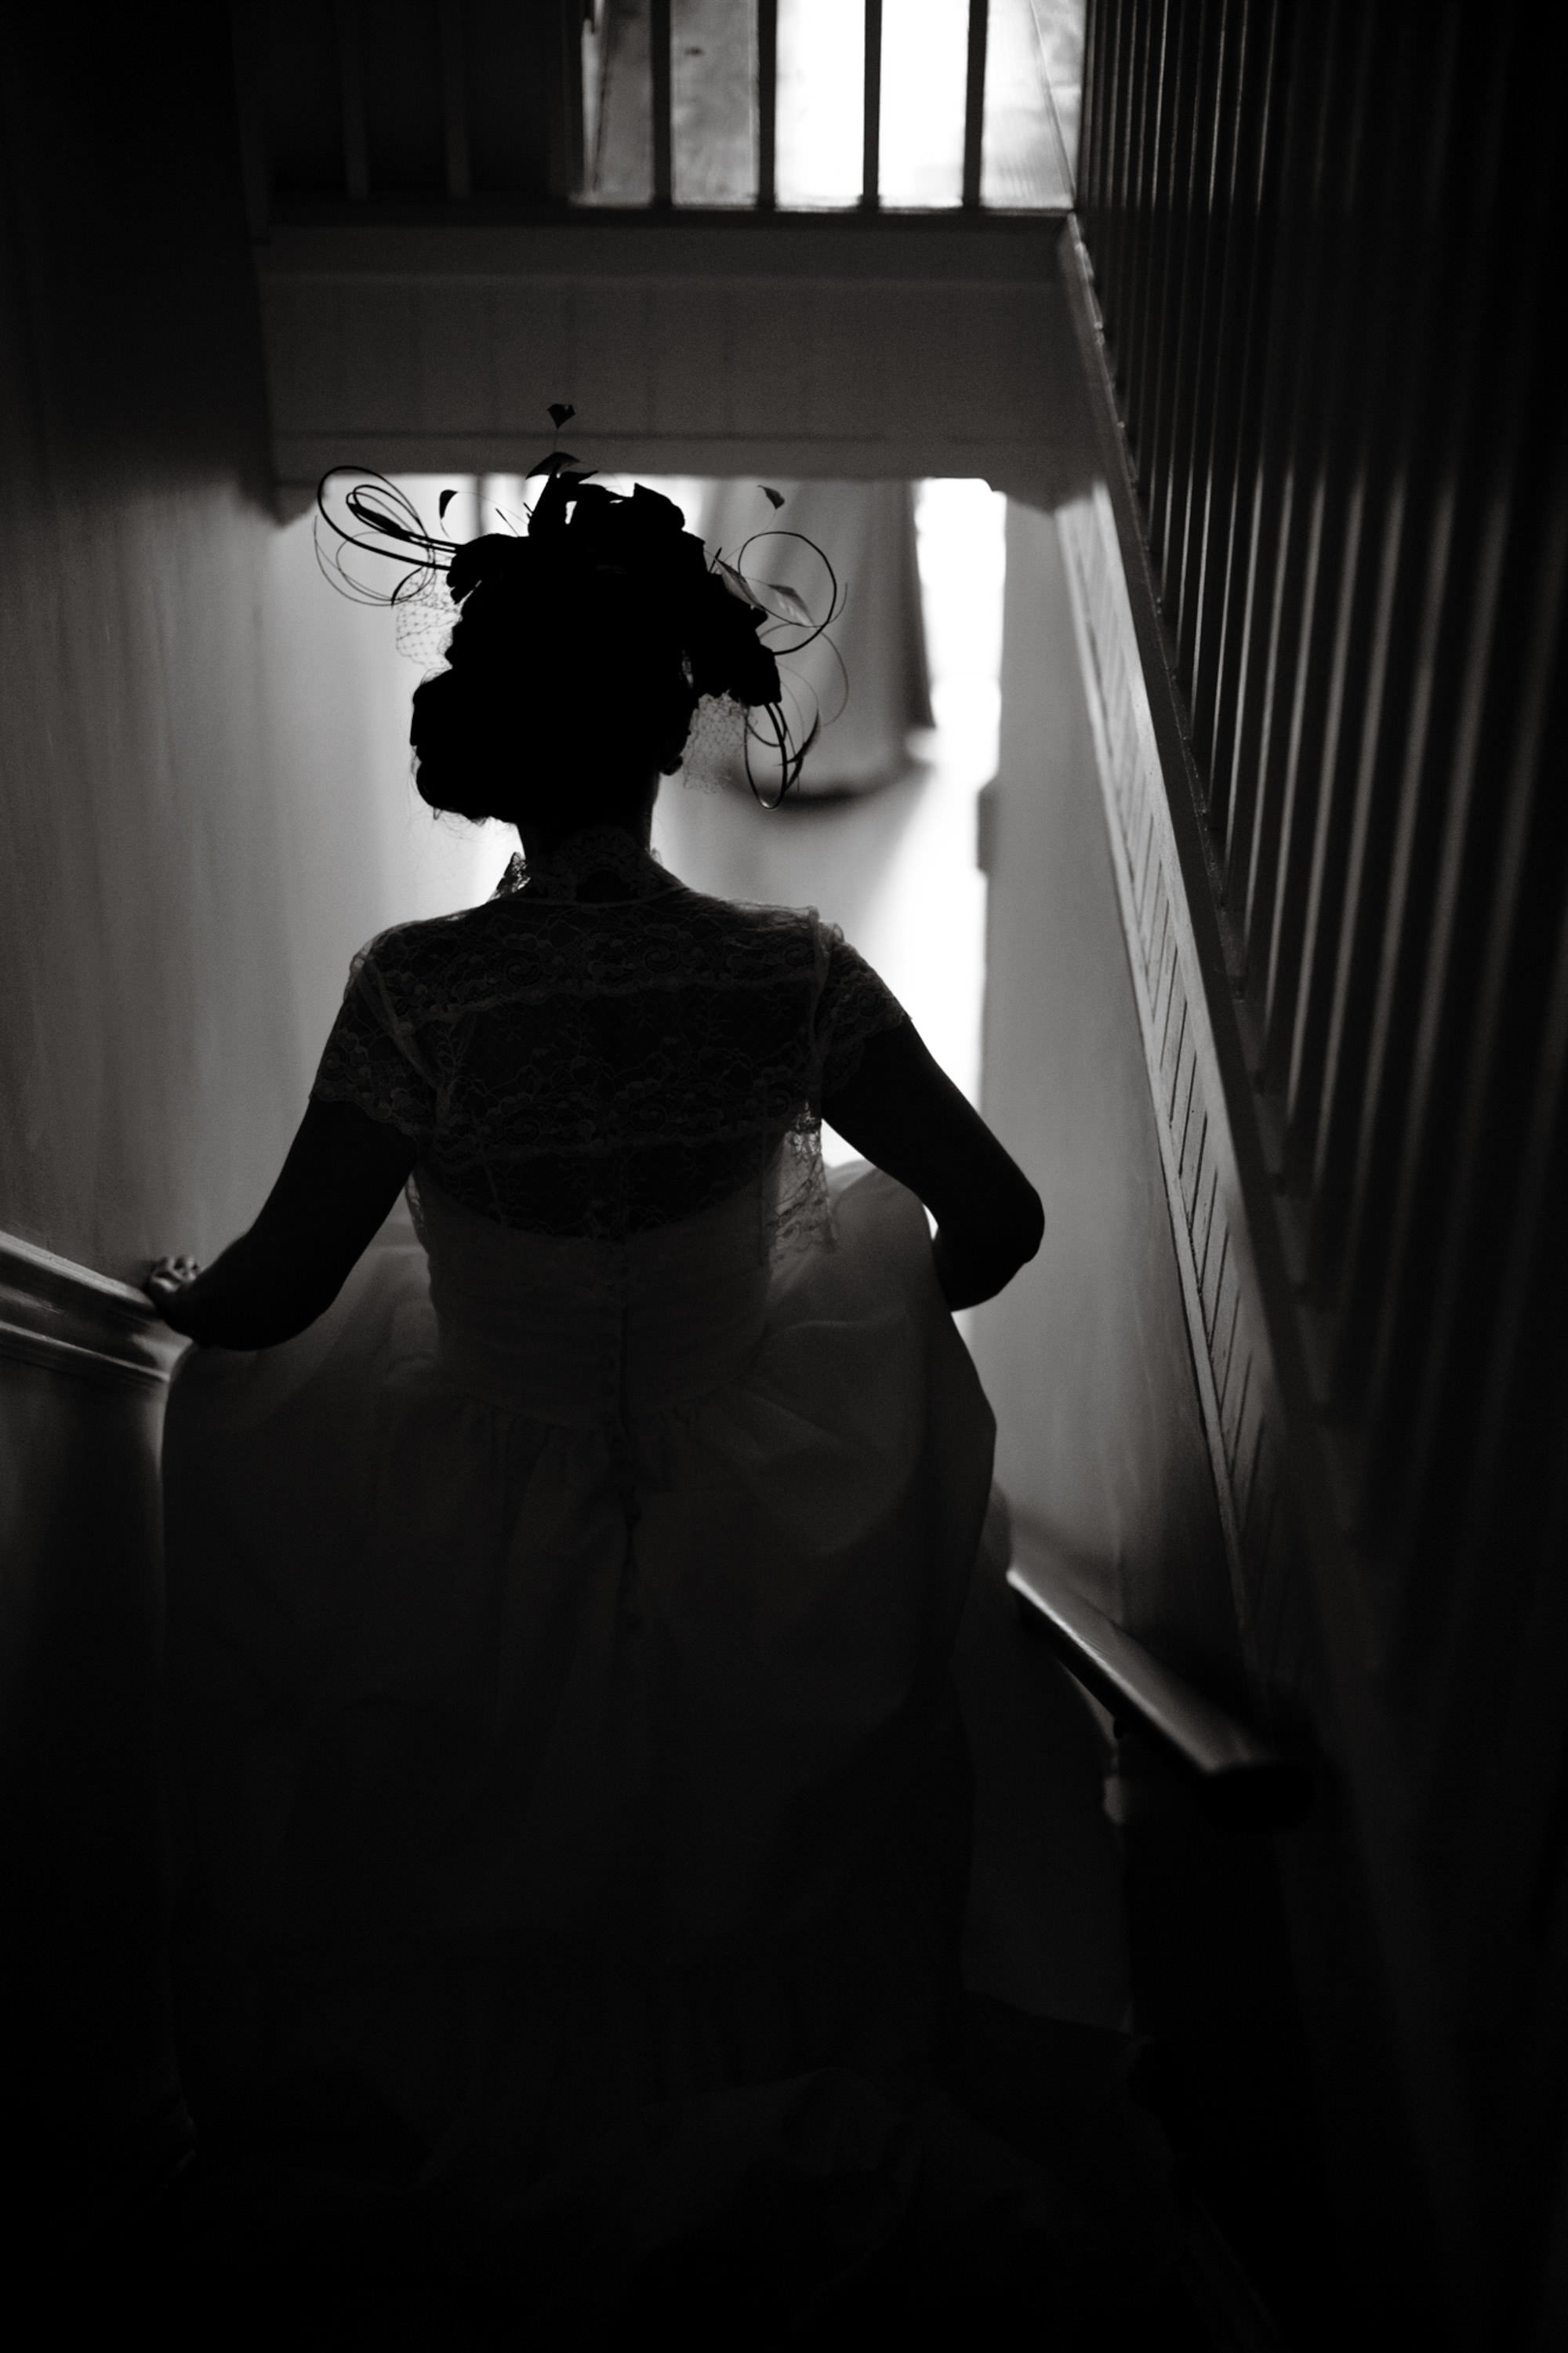 The bride walks down a stairwell.